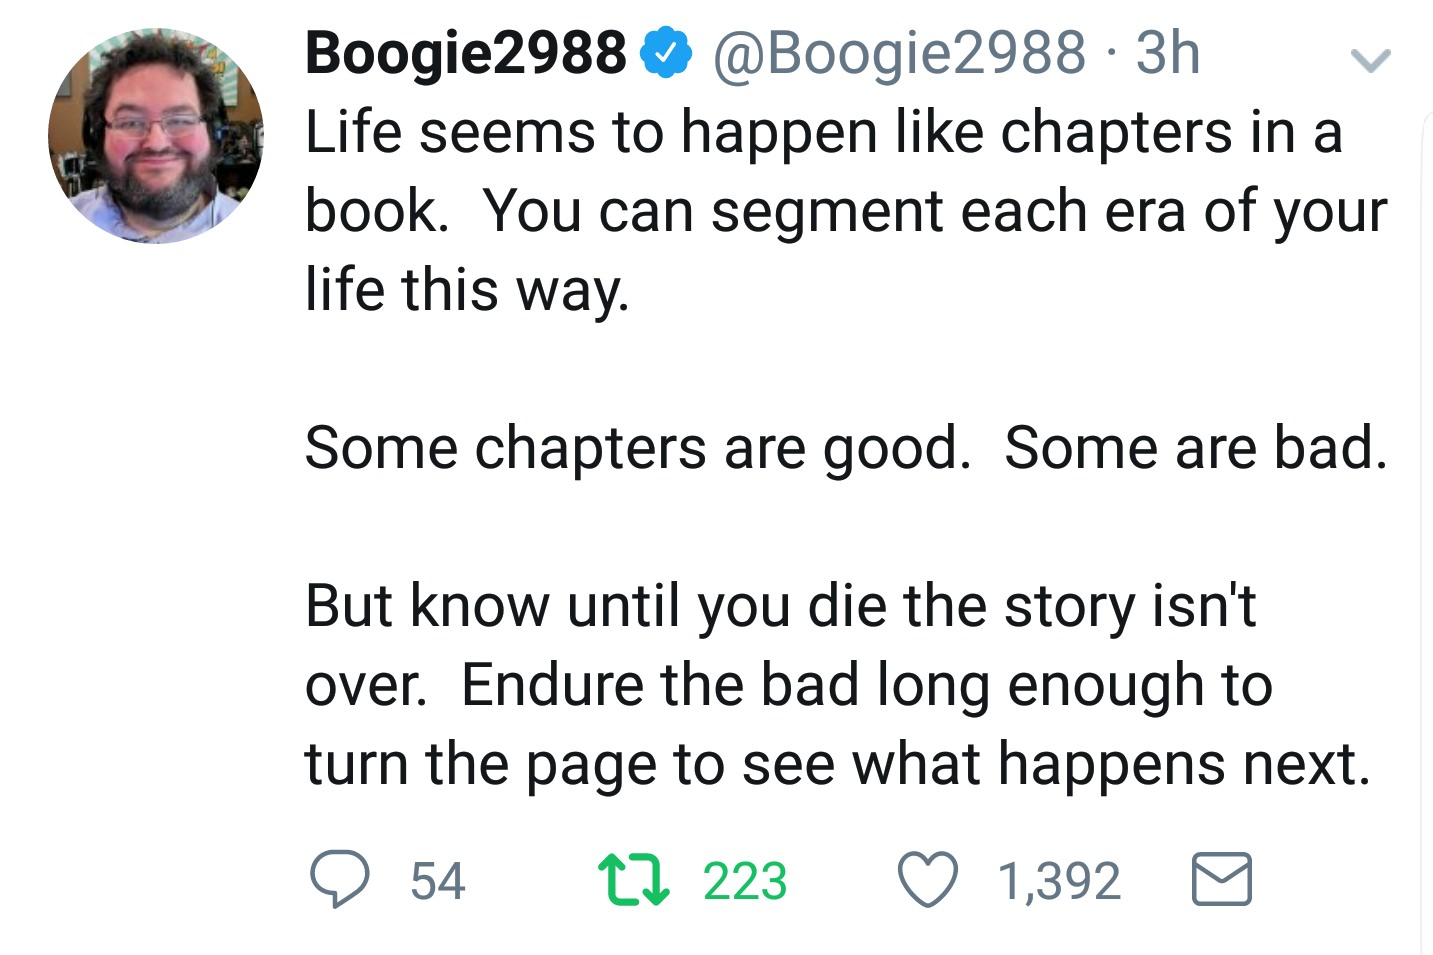 [image] chapters in a book.